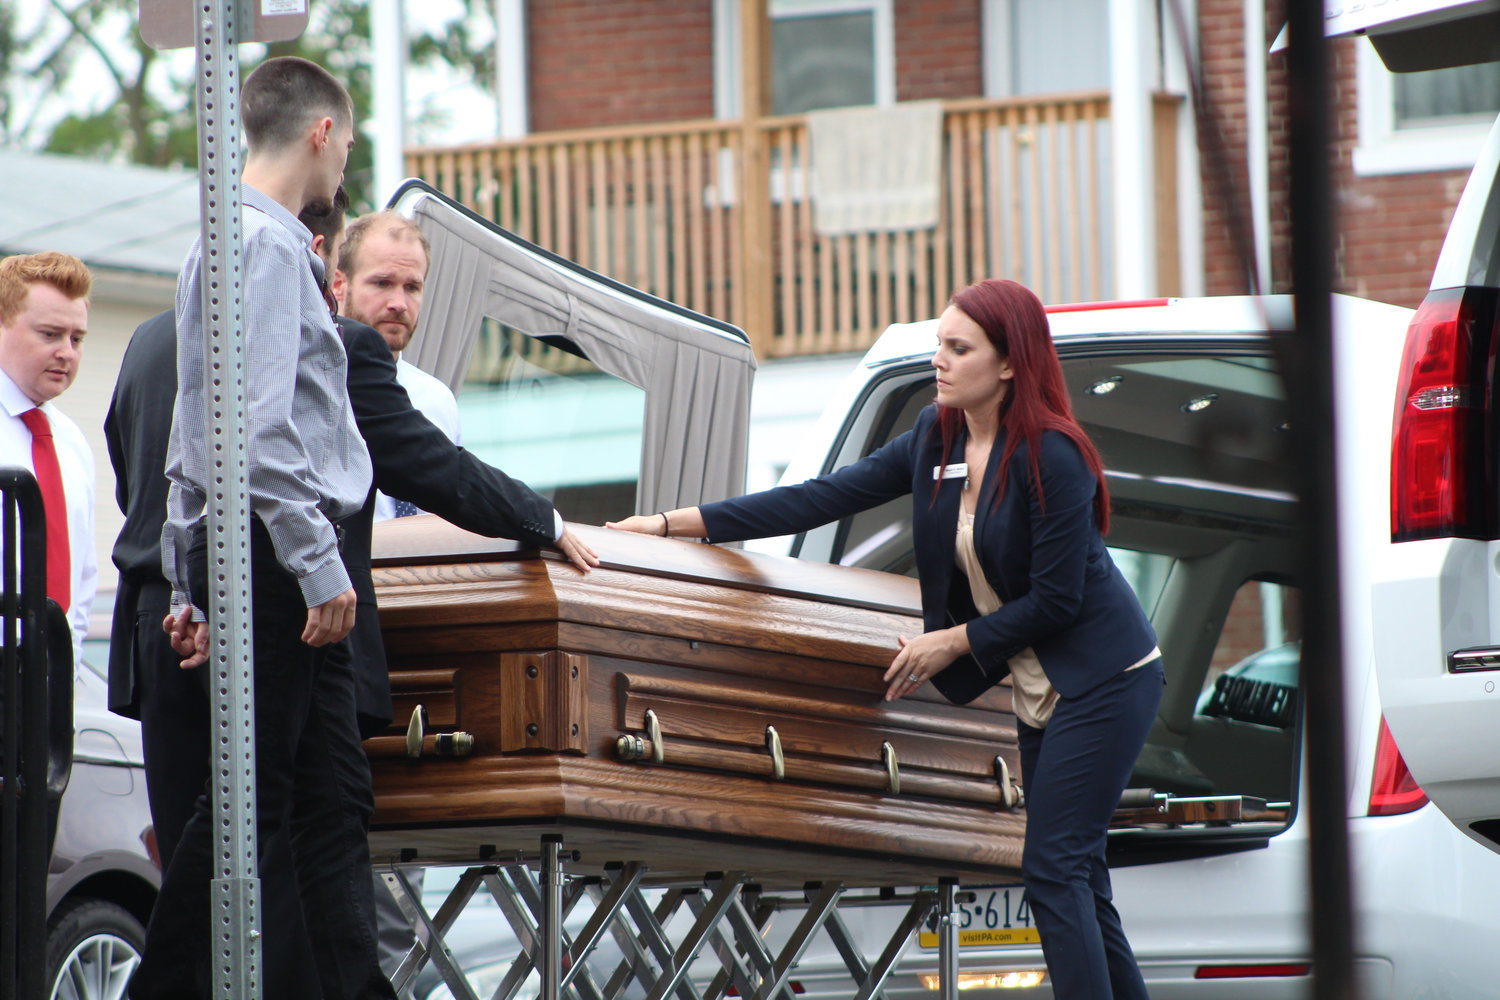 Torin Dworchak's casket is placed in a hearse outside St. Peter's Evangelical Lutheran Church on Sept. 16.